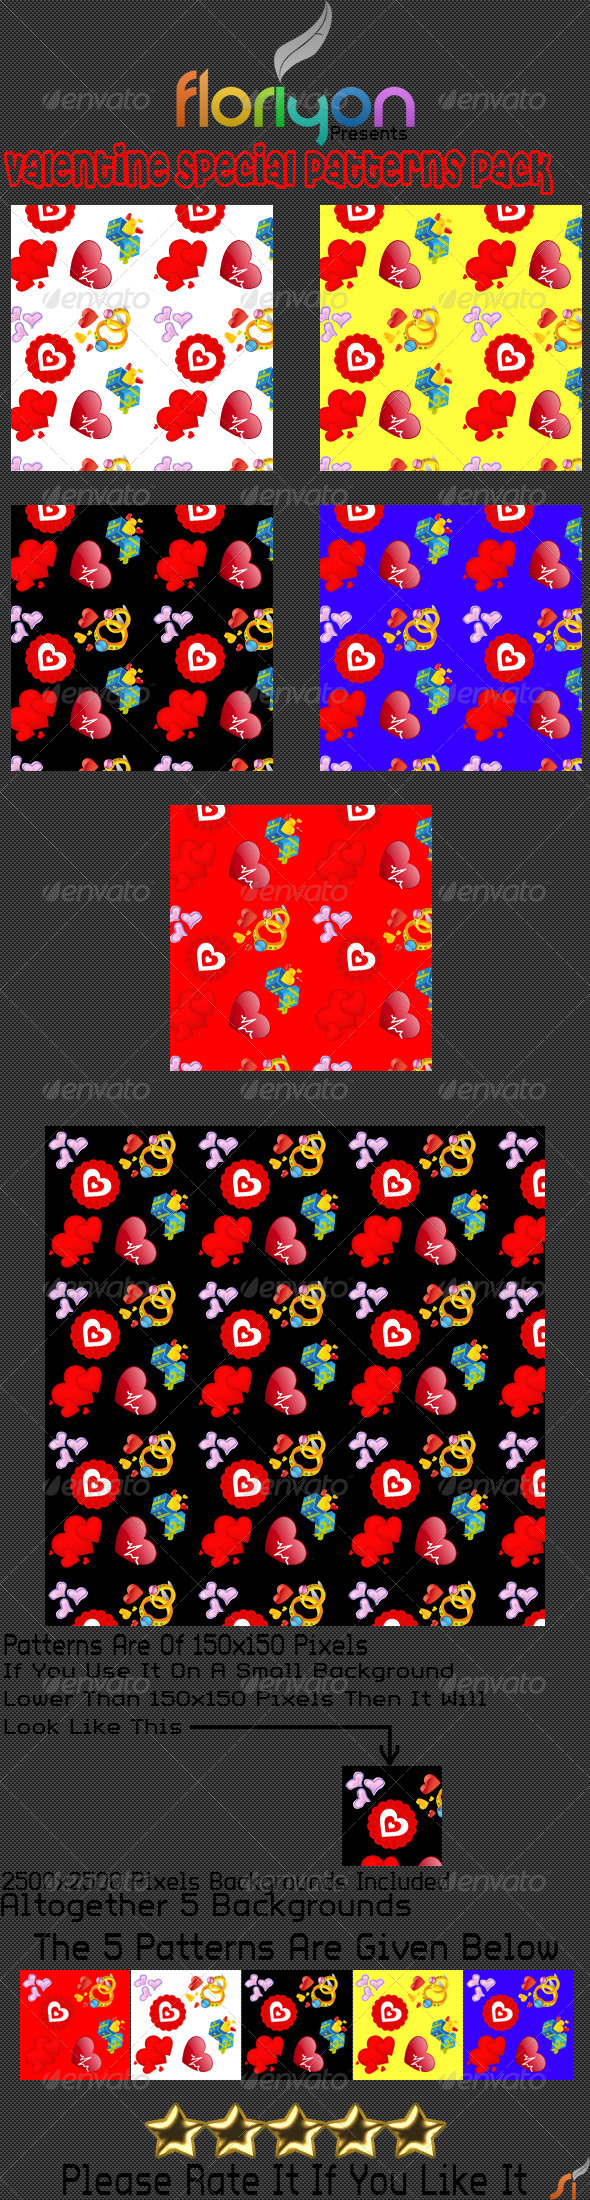 GraphicRiver Valentine Special Patterns Pack 4903324